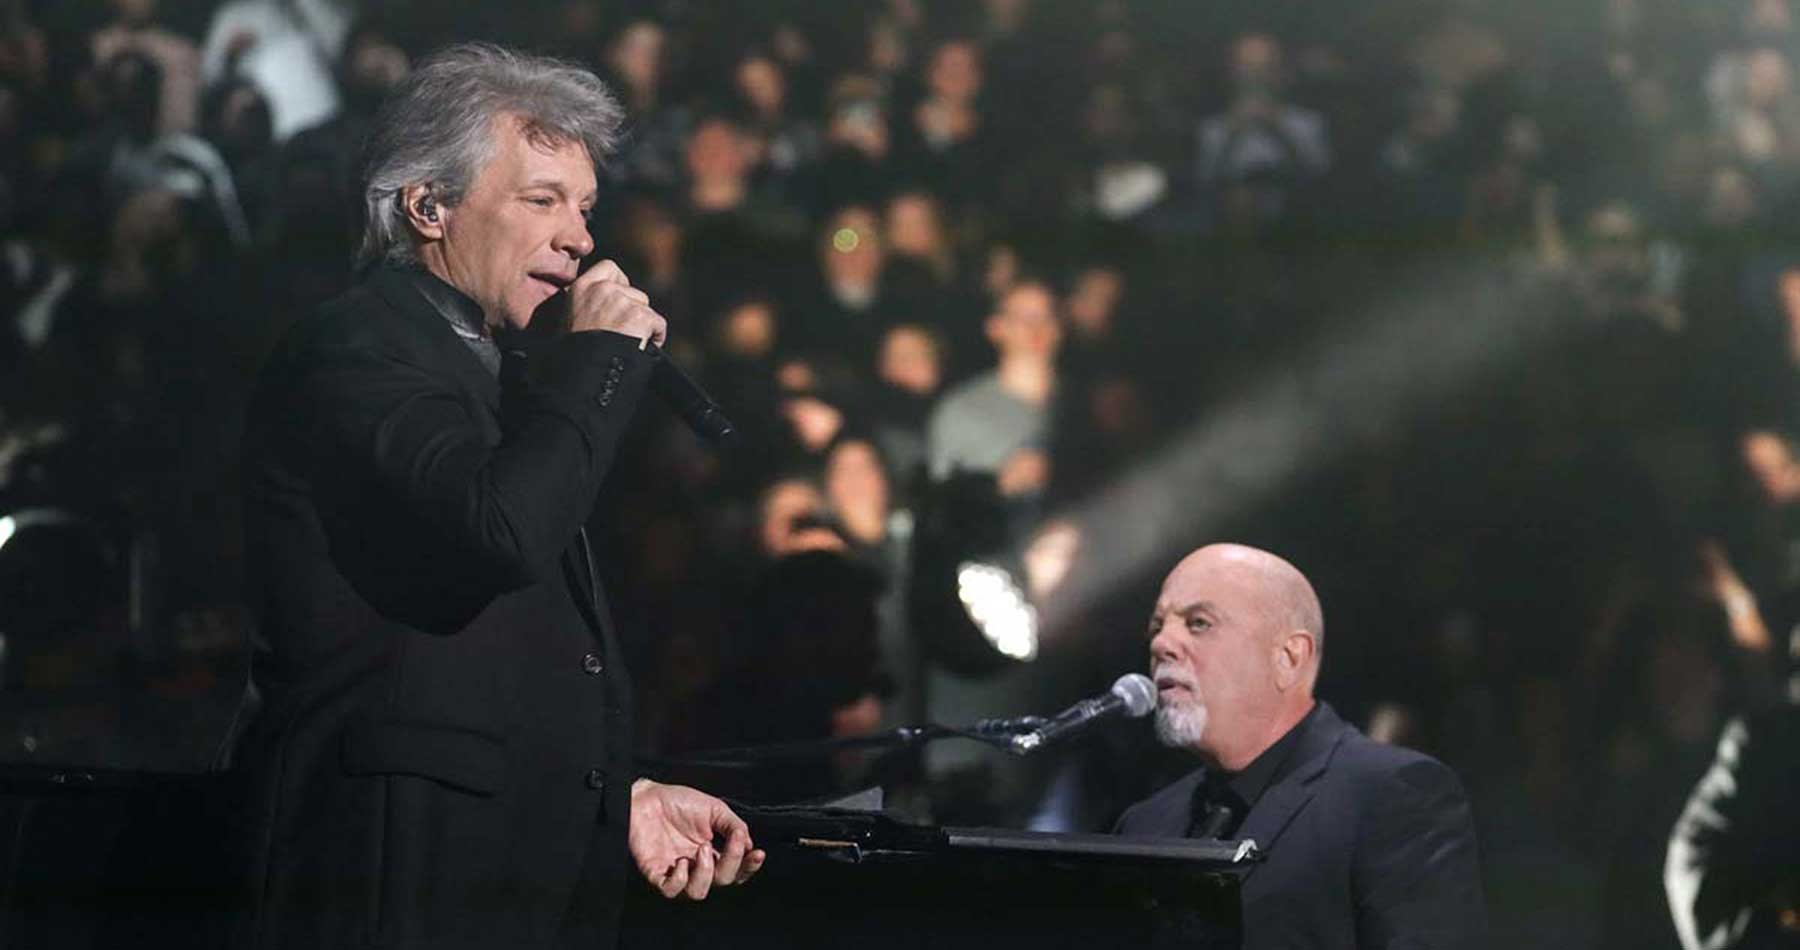 Billy Joel Concert At MSG in New York, NY – January 25, 2020